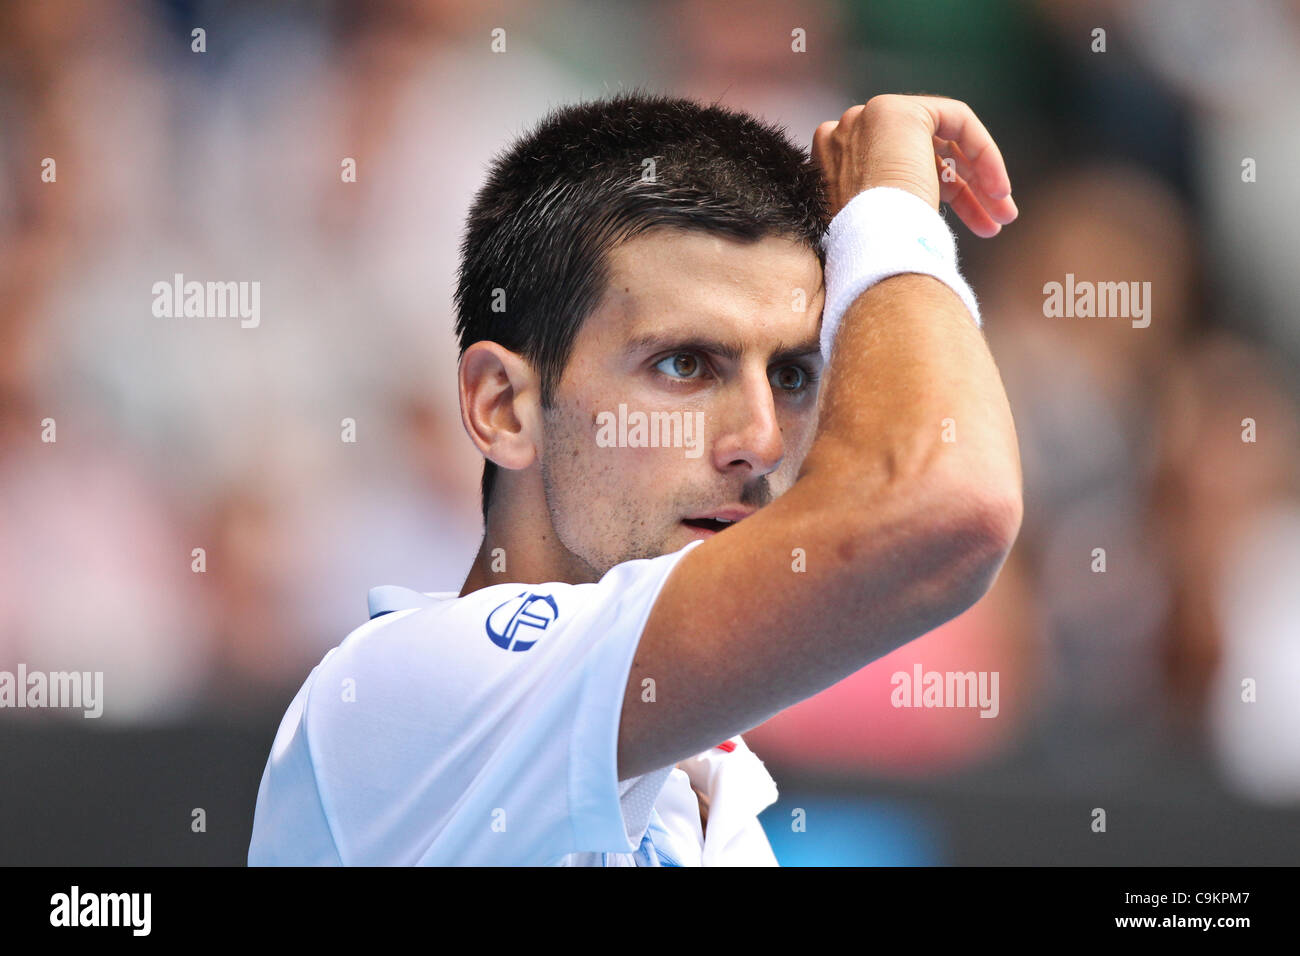 Novak Djokovic playing Nicolas Mahut at the Australian Open, Melbourne, January 21, 2012. - Stock Image